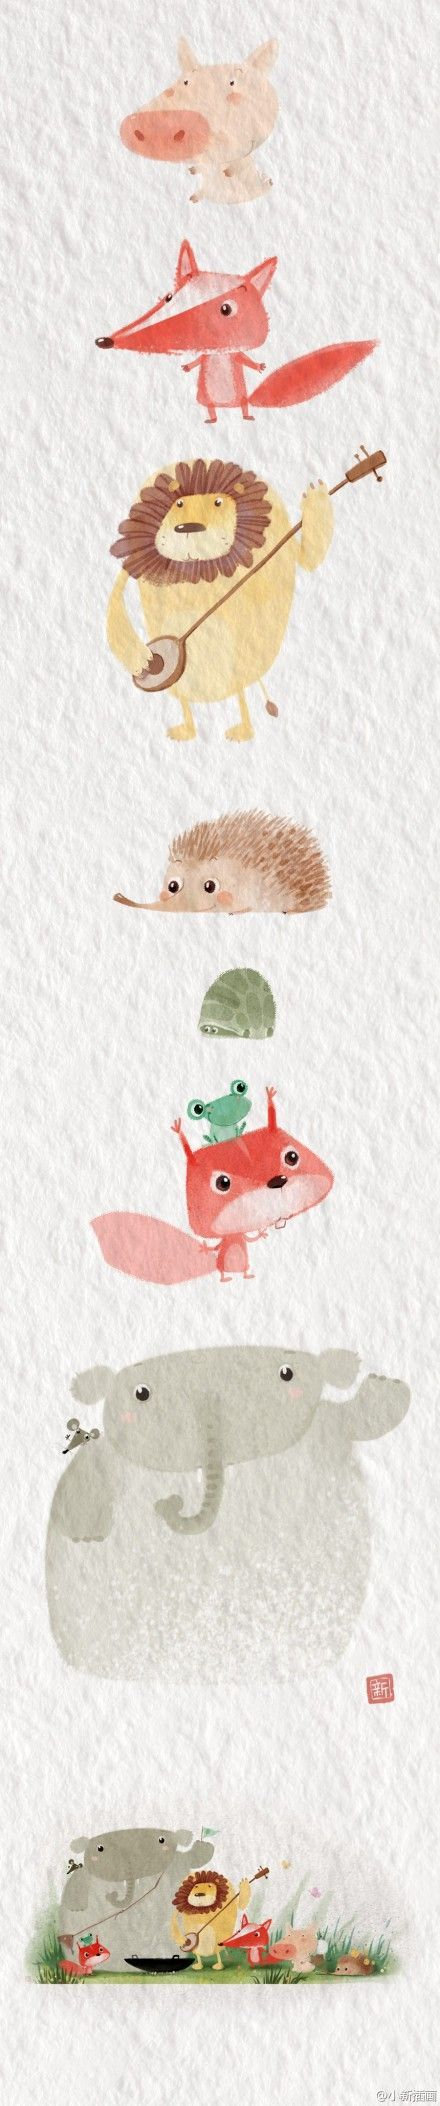 Watercolor animals aesthetically awesome pinterest - Ilustraciones infantiles acuarela ...